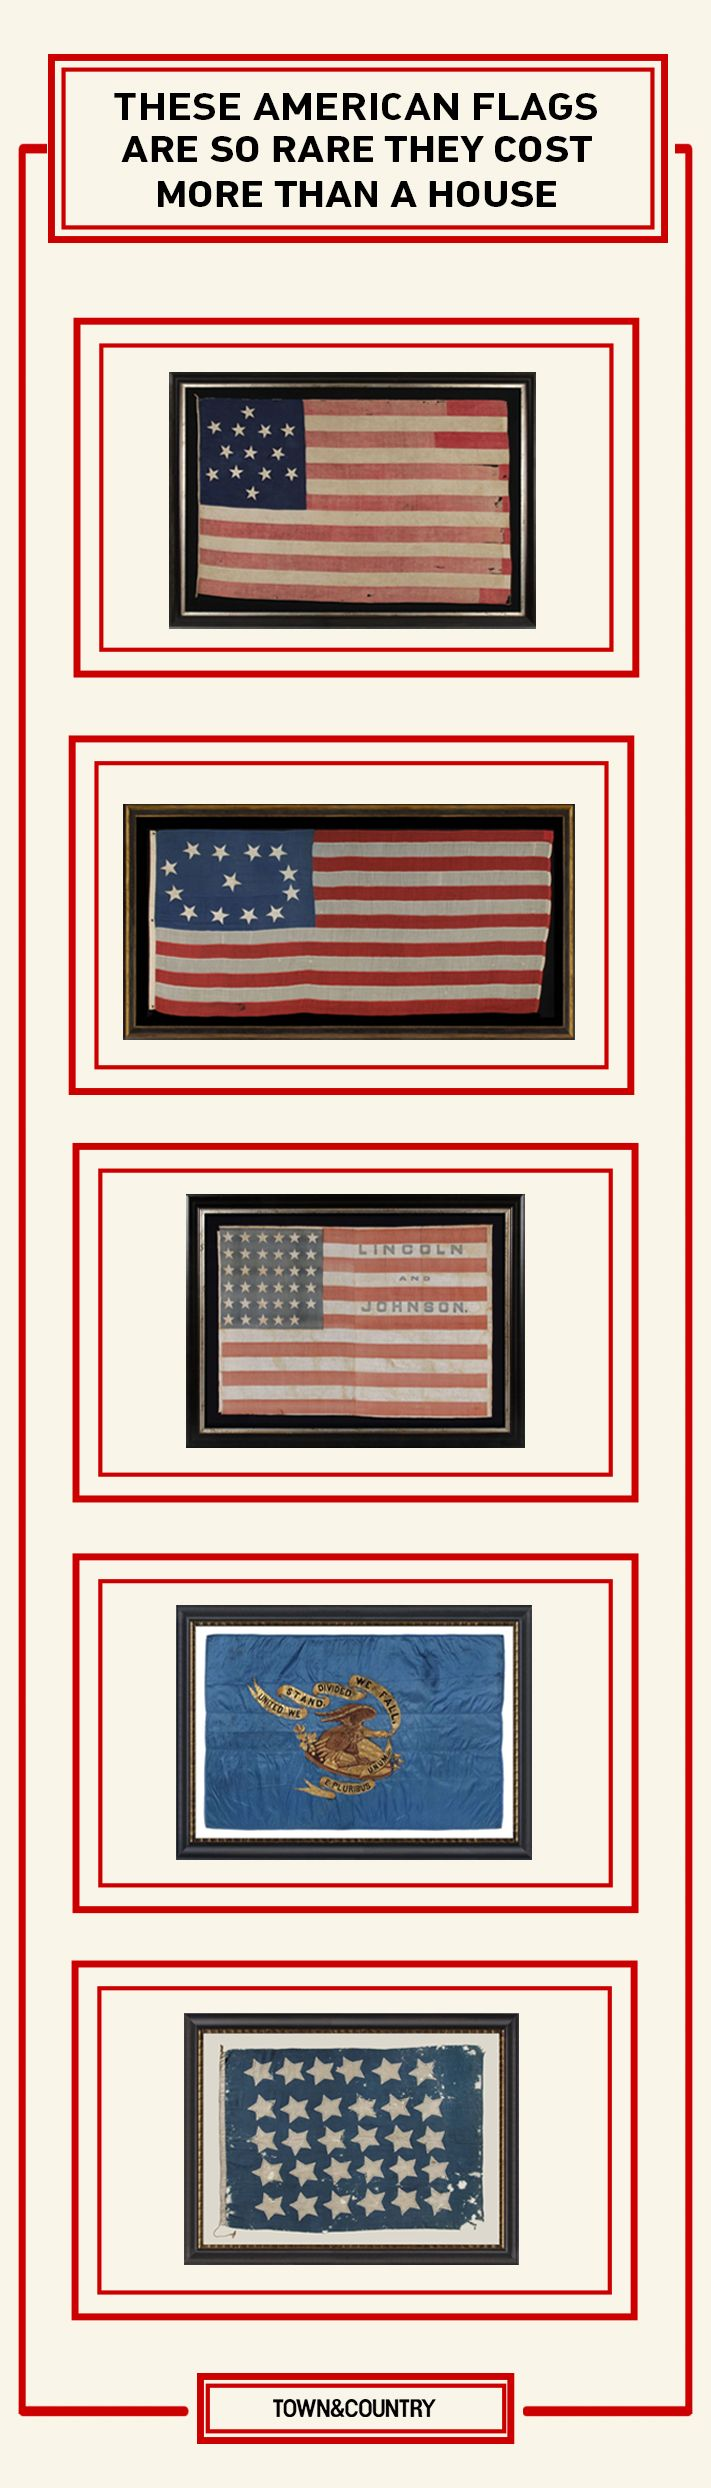 In celebration of 4th of July, we assembled a selection of antique American flags and textiles currently available through Jeff R. Bridgman, the country's foremost dealer.